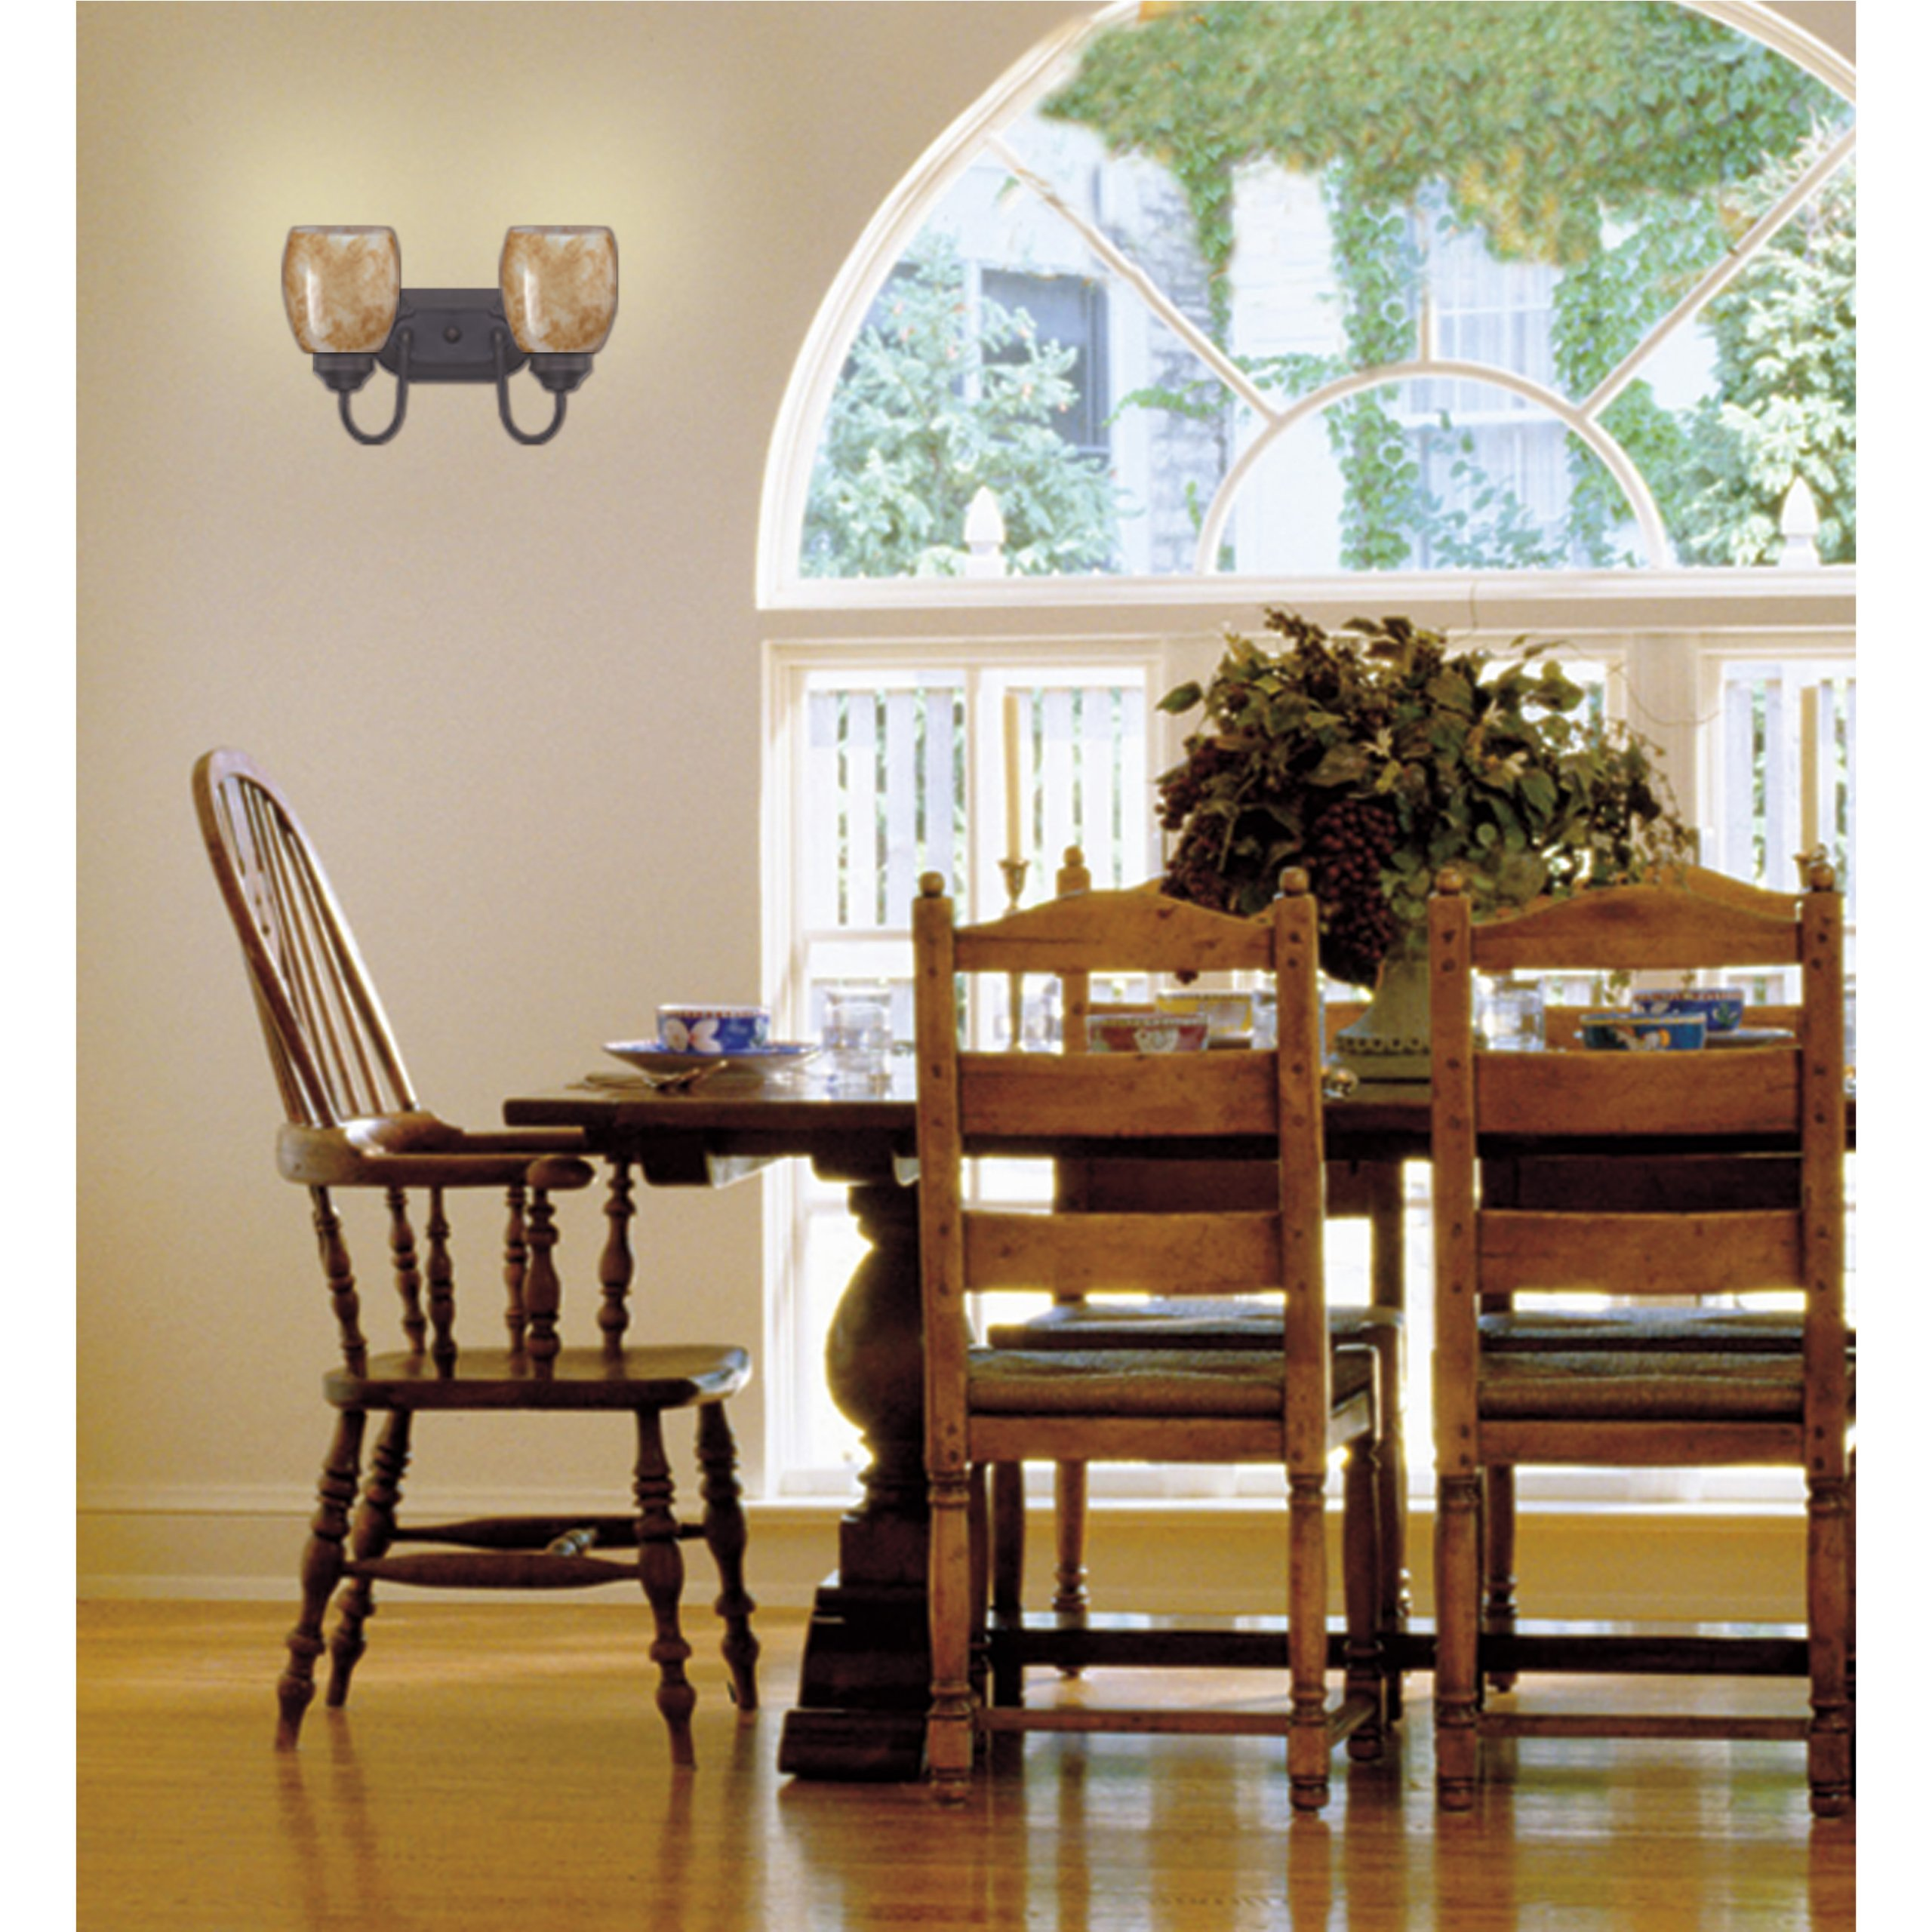 Westinghouse 6300300 Two Light Wall Fixture Oil Rubbed Bronze Finish